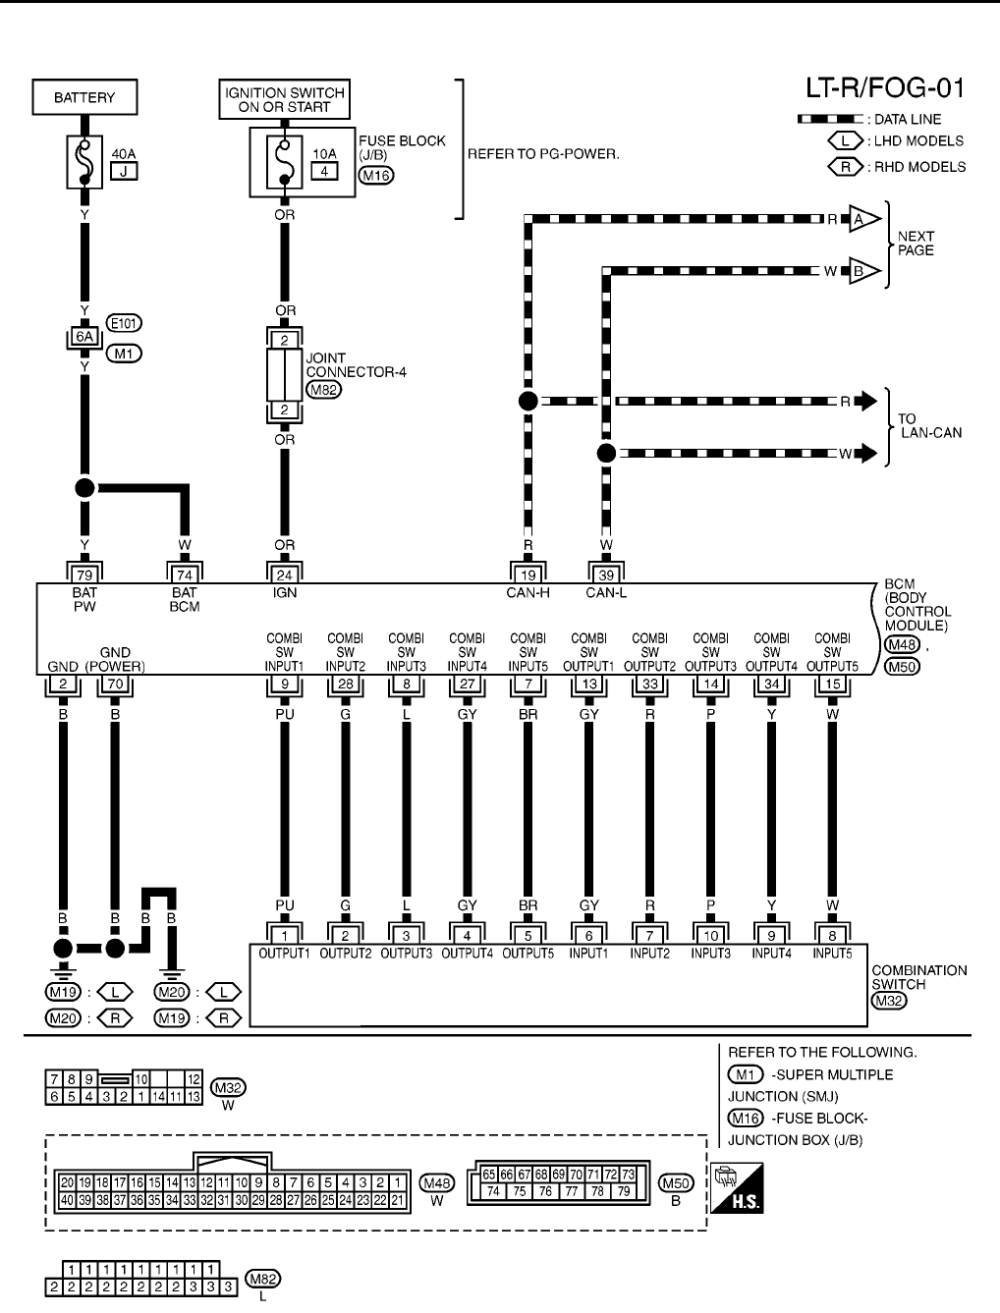 medium resolution of nissan micra wiring diagrams 2003 2005 23 pdf nissan micra k12 wiring diagram free wiring diagram nissan micra k12